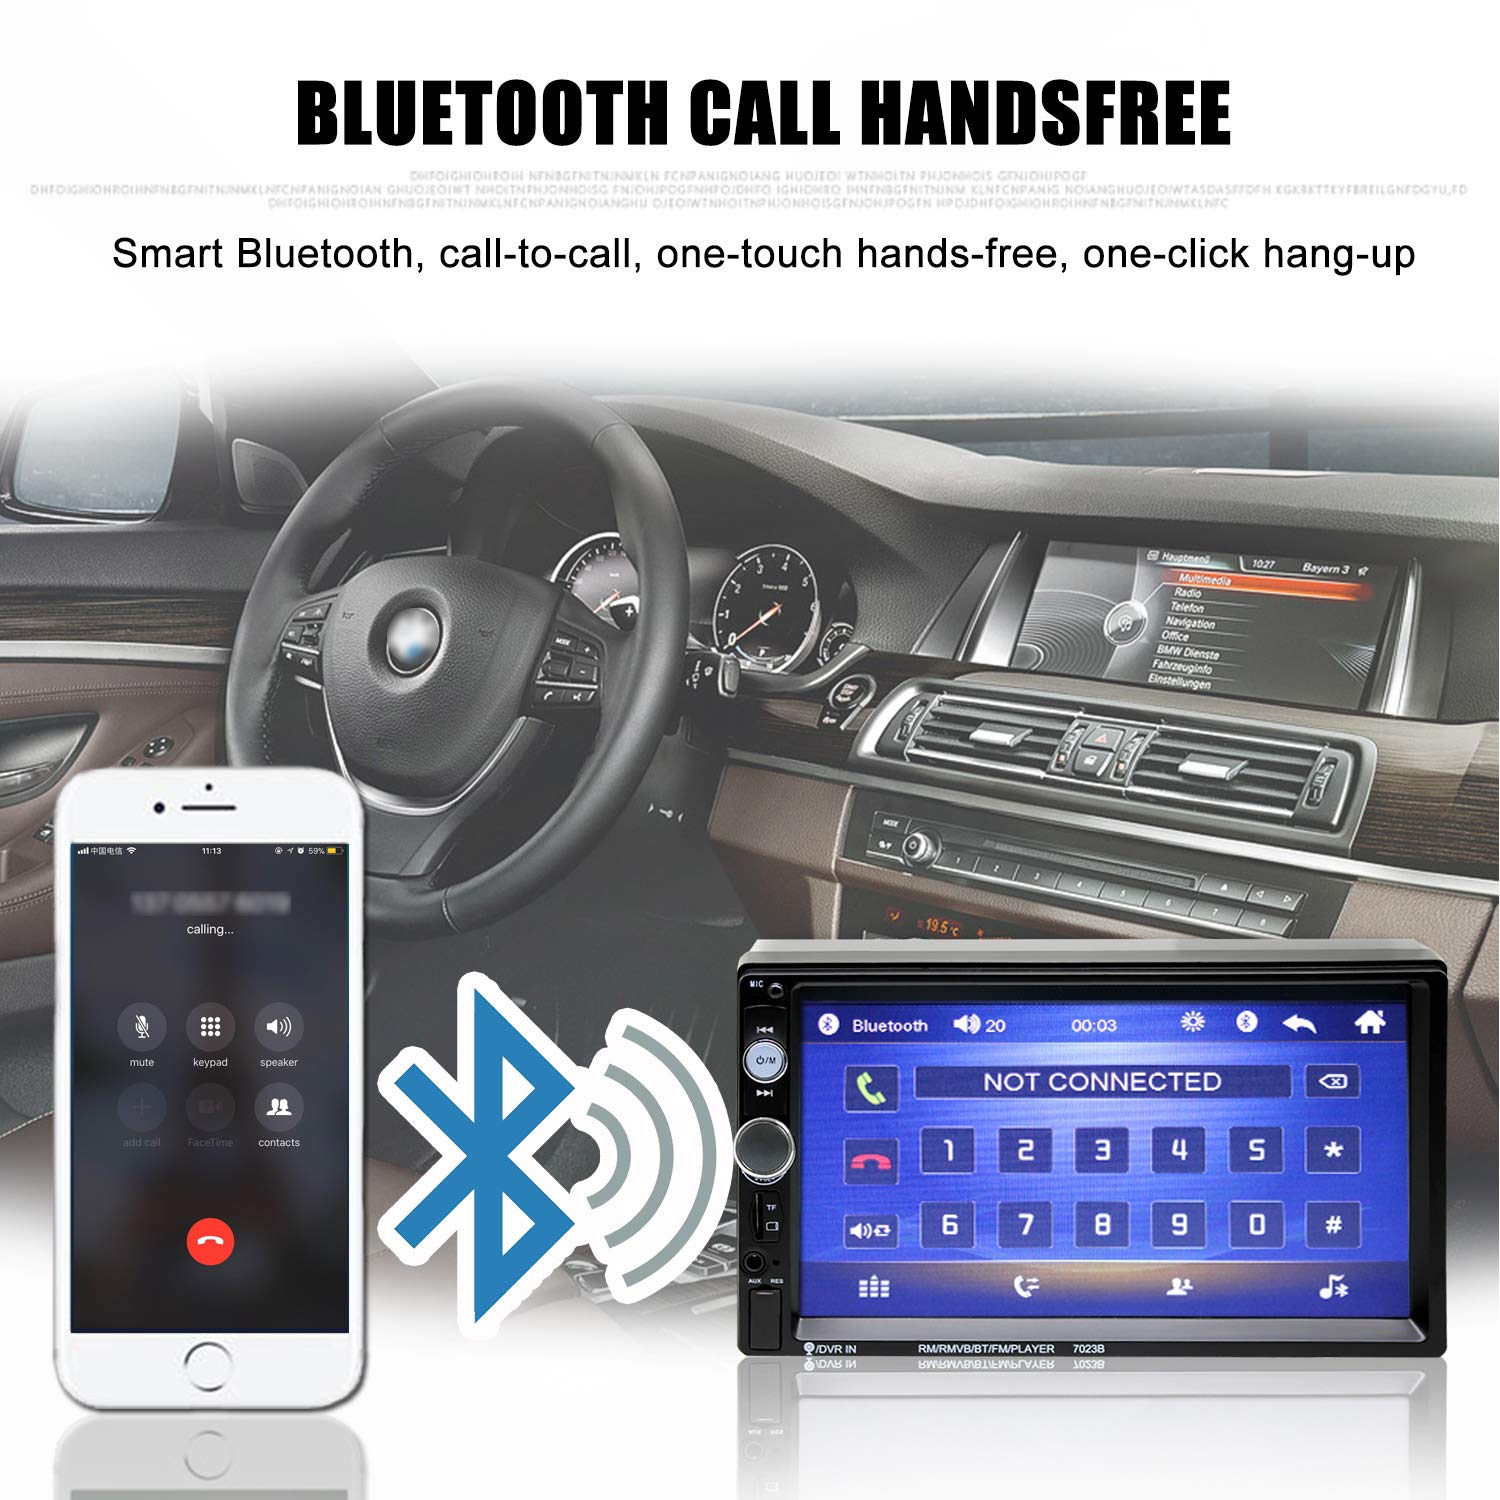 Double Din Car Stereo in-Dash Bluetooth Touch Screen 7 inch with Rear-View Camera,Video MP5/4/3 Player, Radio FM, Car Stereo Receiver, Support Steering Wheel Remote Control, Mirror Link, Caller ID by Yakalla (Image #4)